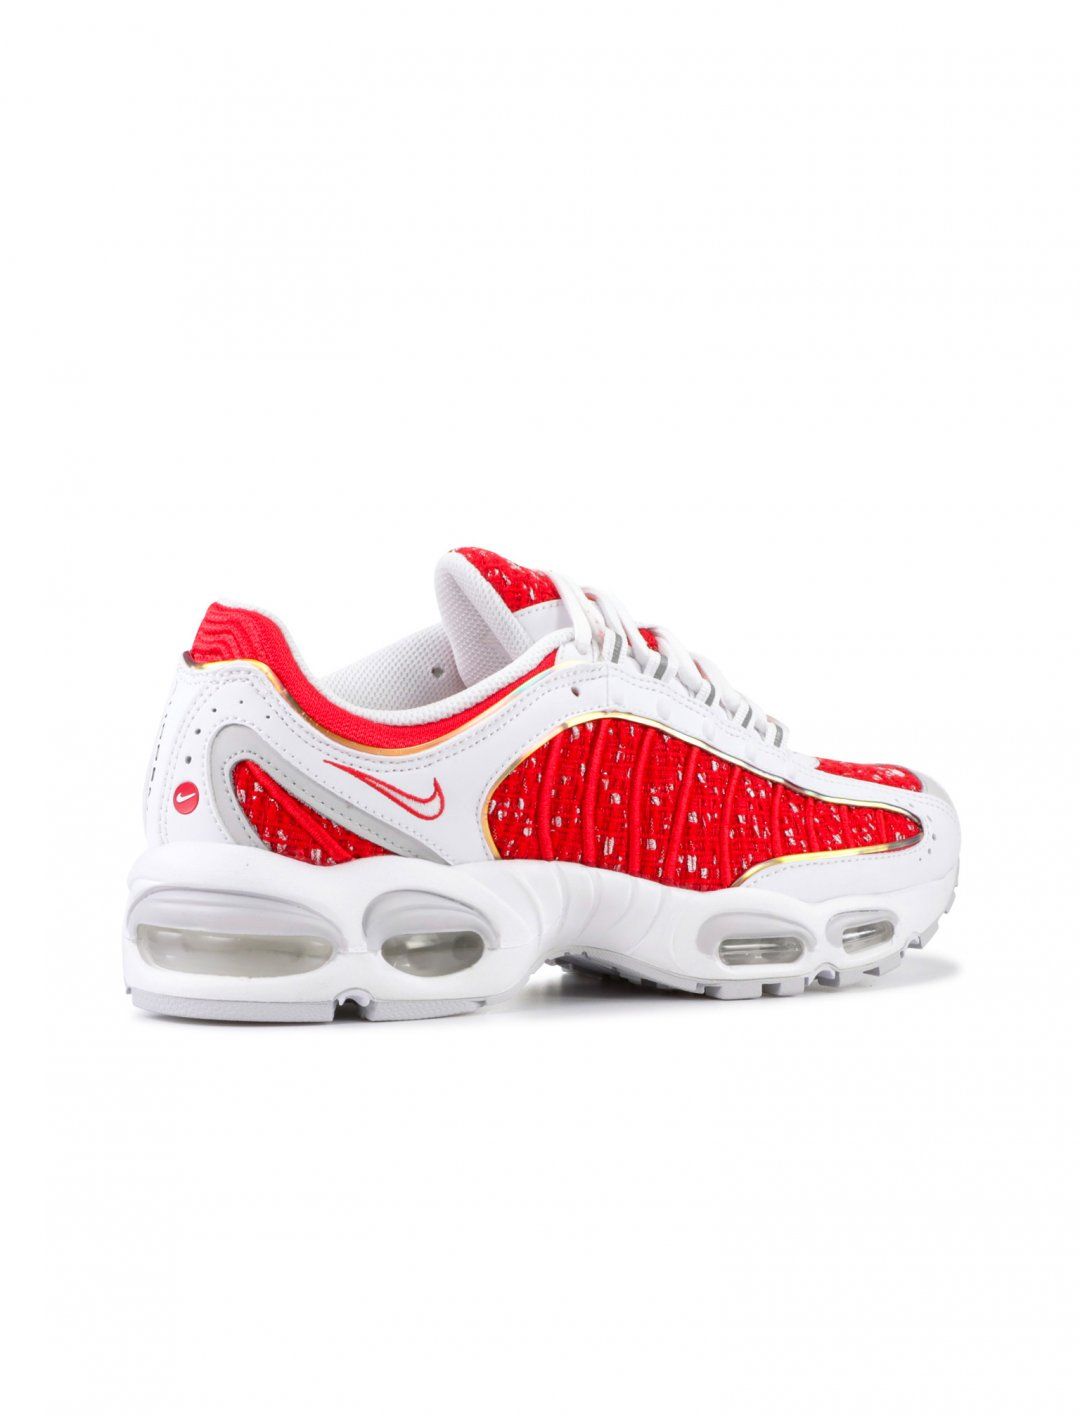 "Air Max Tailwind IV Shoes {""id"":12,""product_section_id"":1,""name"":""Shoes"",""order"":12} Supreme x Nike"